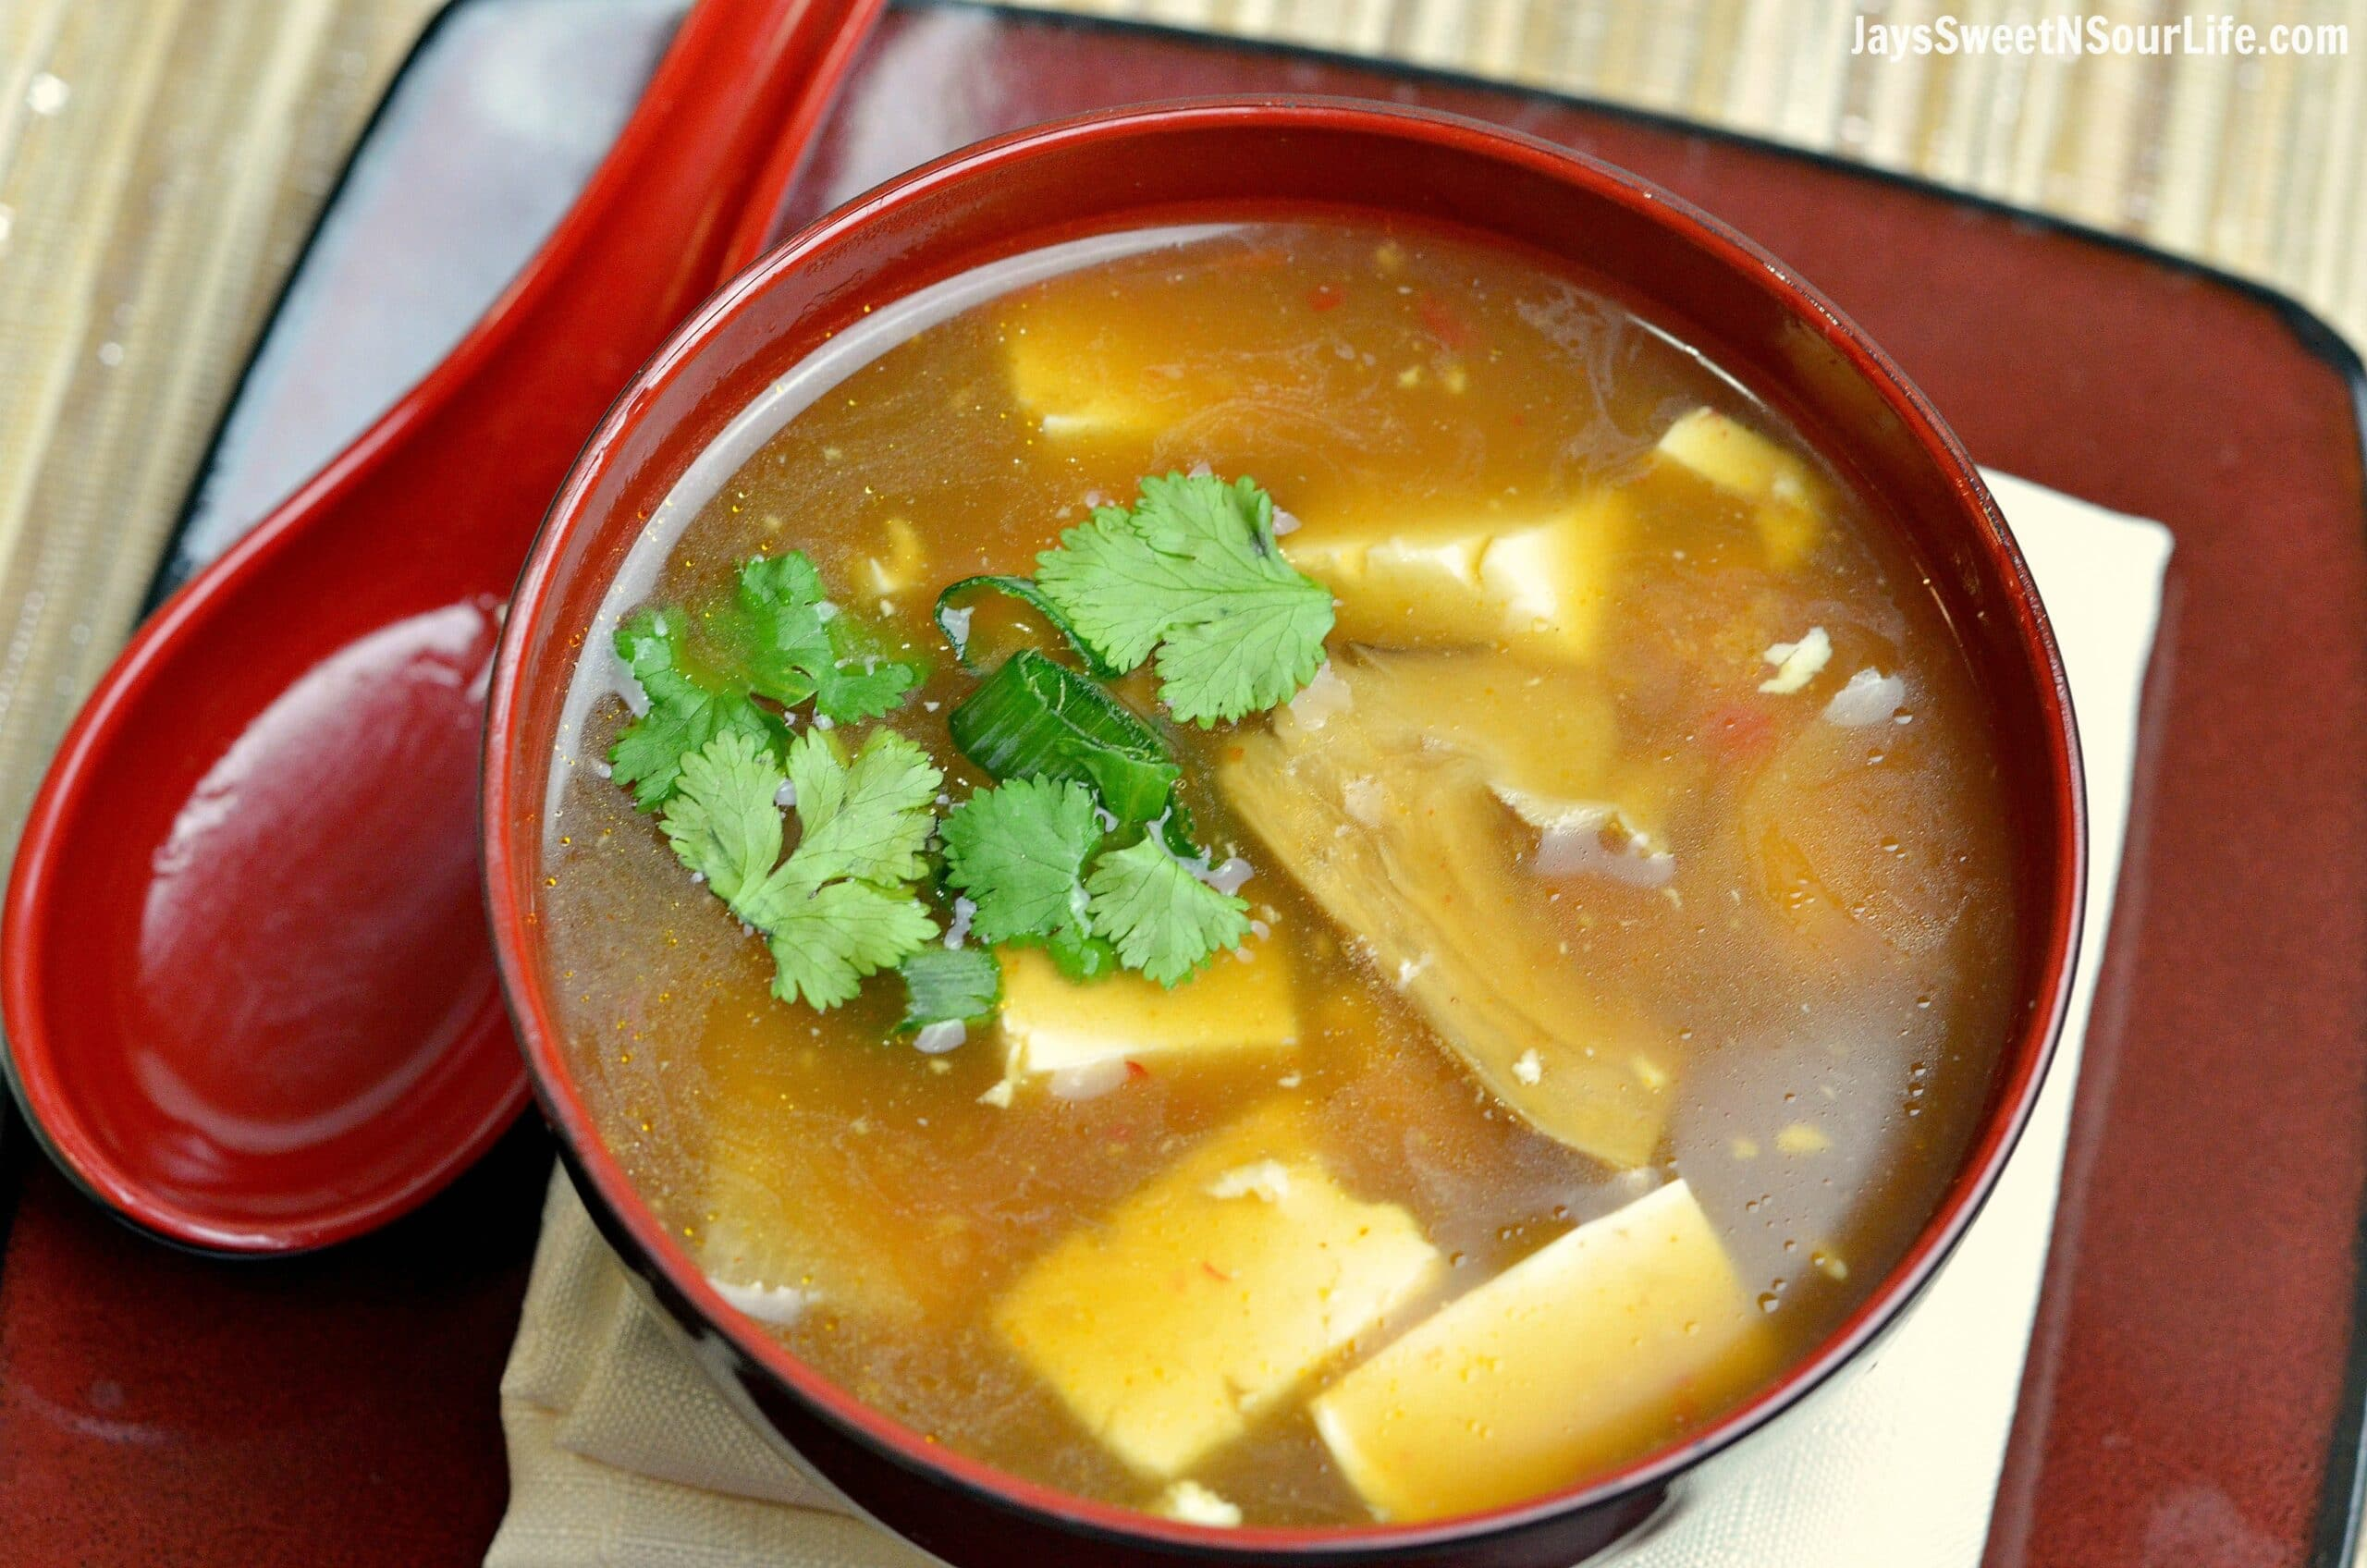 Chinese Hot and Sour Soup. Enjoy a warm bowl of Instant Pot Hot and Sour Soup with the family. Made with or without your favorite tofu, this meatless traditional Chinese soup is an easy weeknight dinner option. Inside of a flavorful hot and sour broth, you will find bamboo shoots, fresh cilantro, and more.